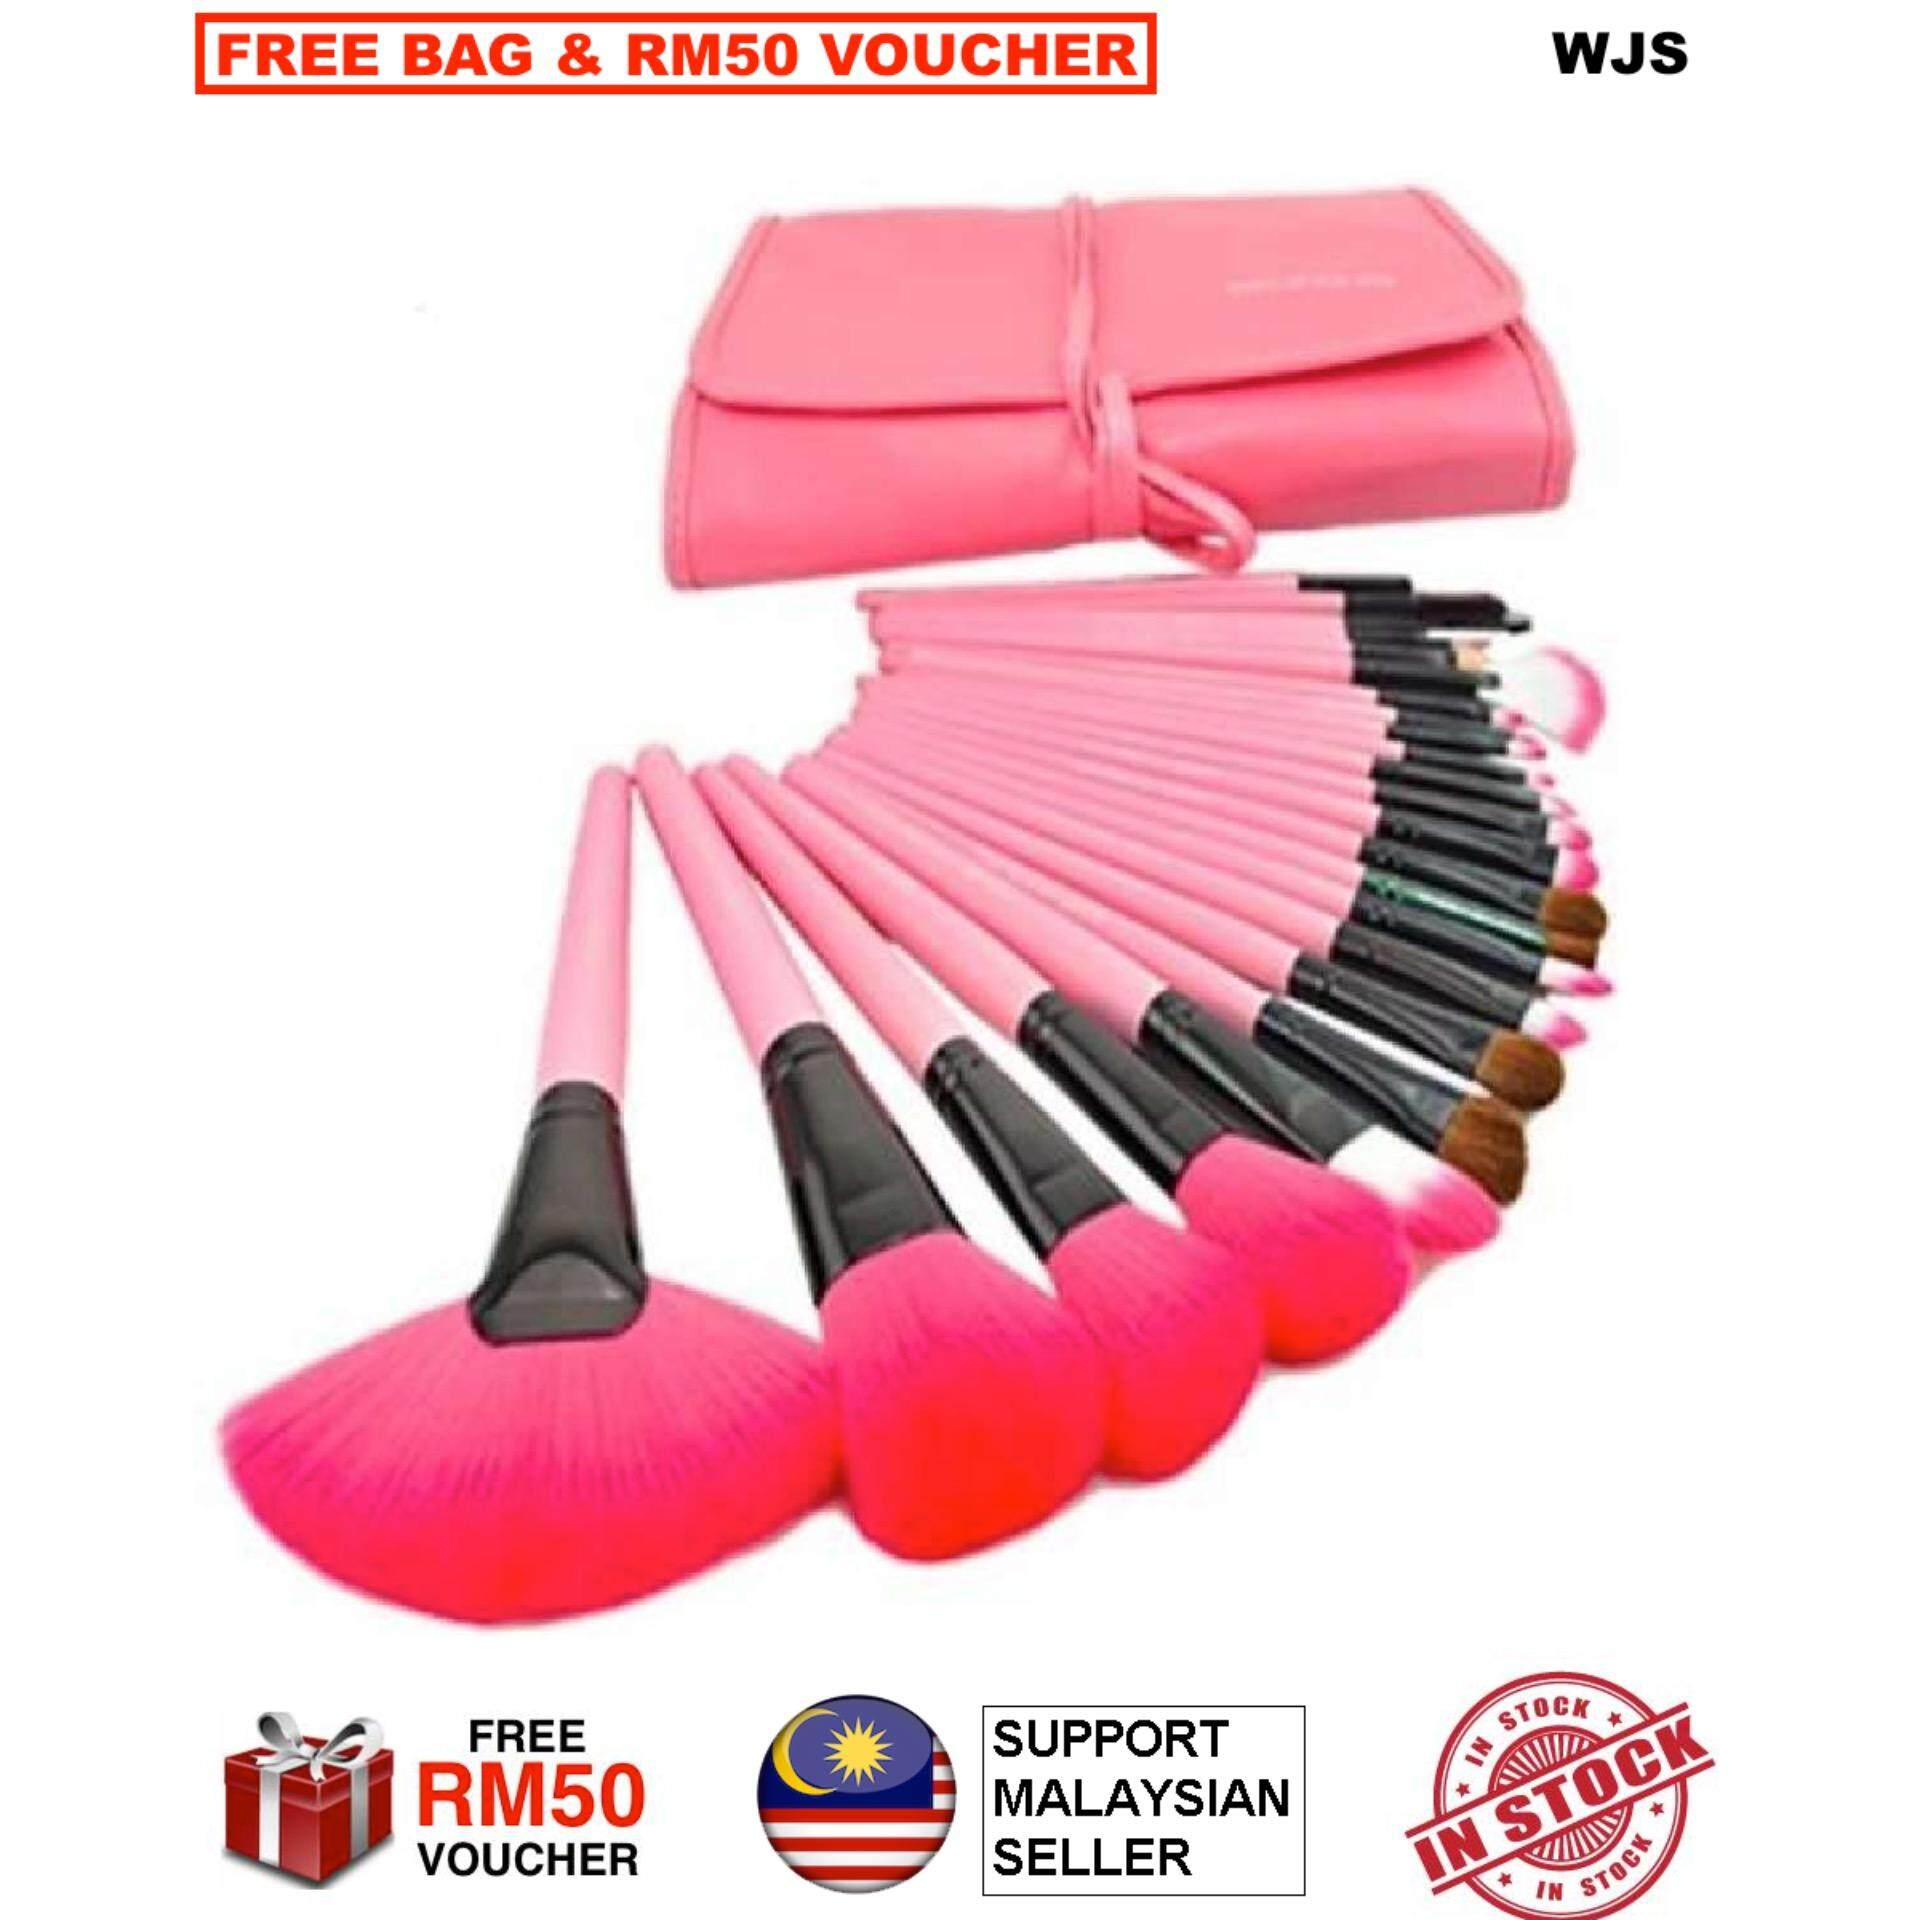 (HALAL BRUSH) WJS HALAL 24 pcs High Quality Professional Cosmetic Makeup  Brush Set With Pouch Bag PINK